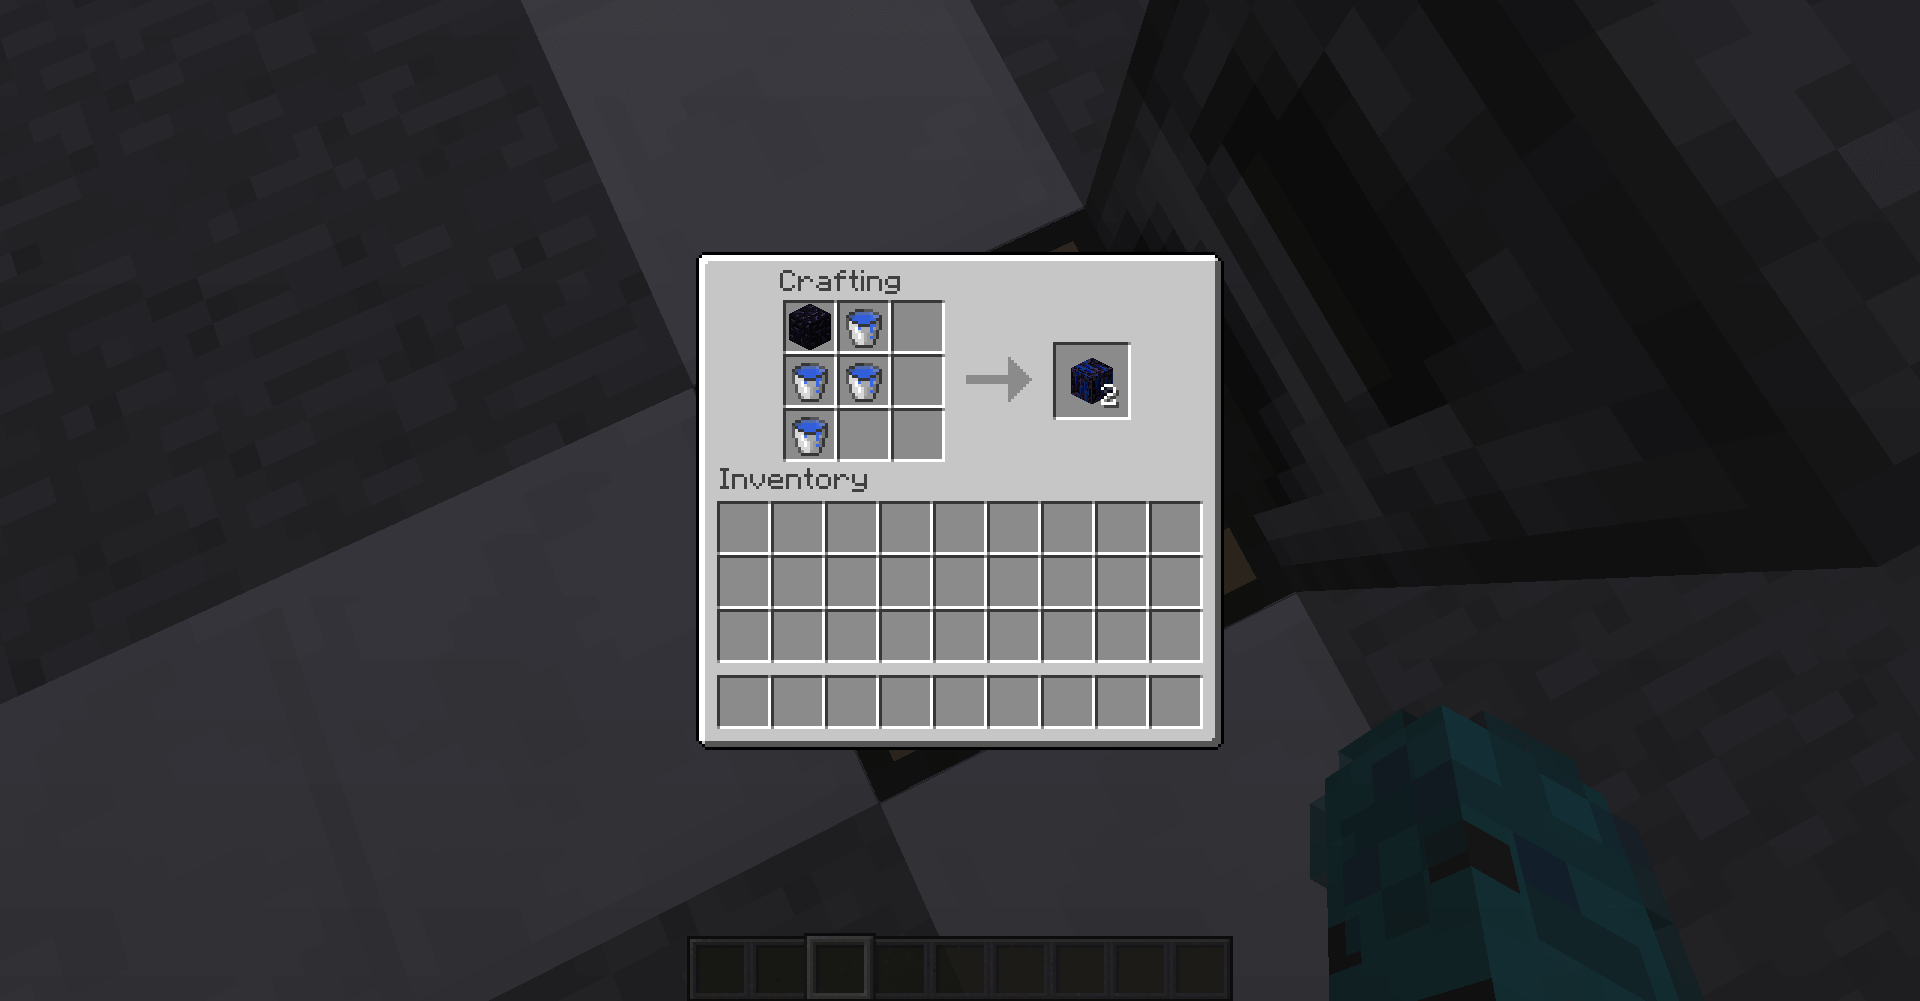 heaven-and-hell-mod-crafting-recipes-6.png